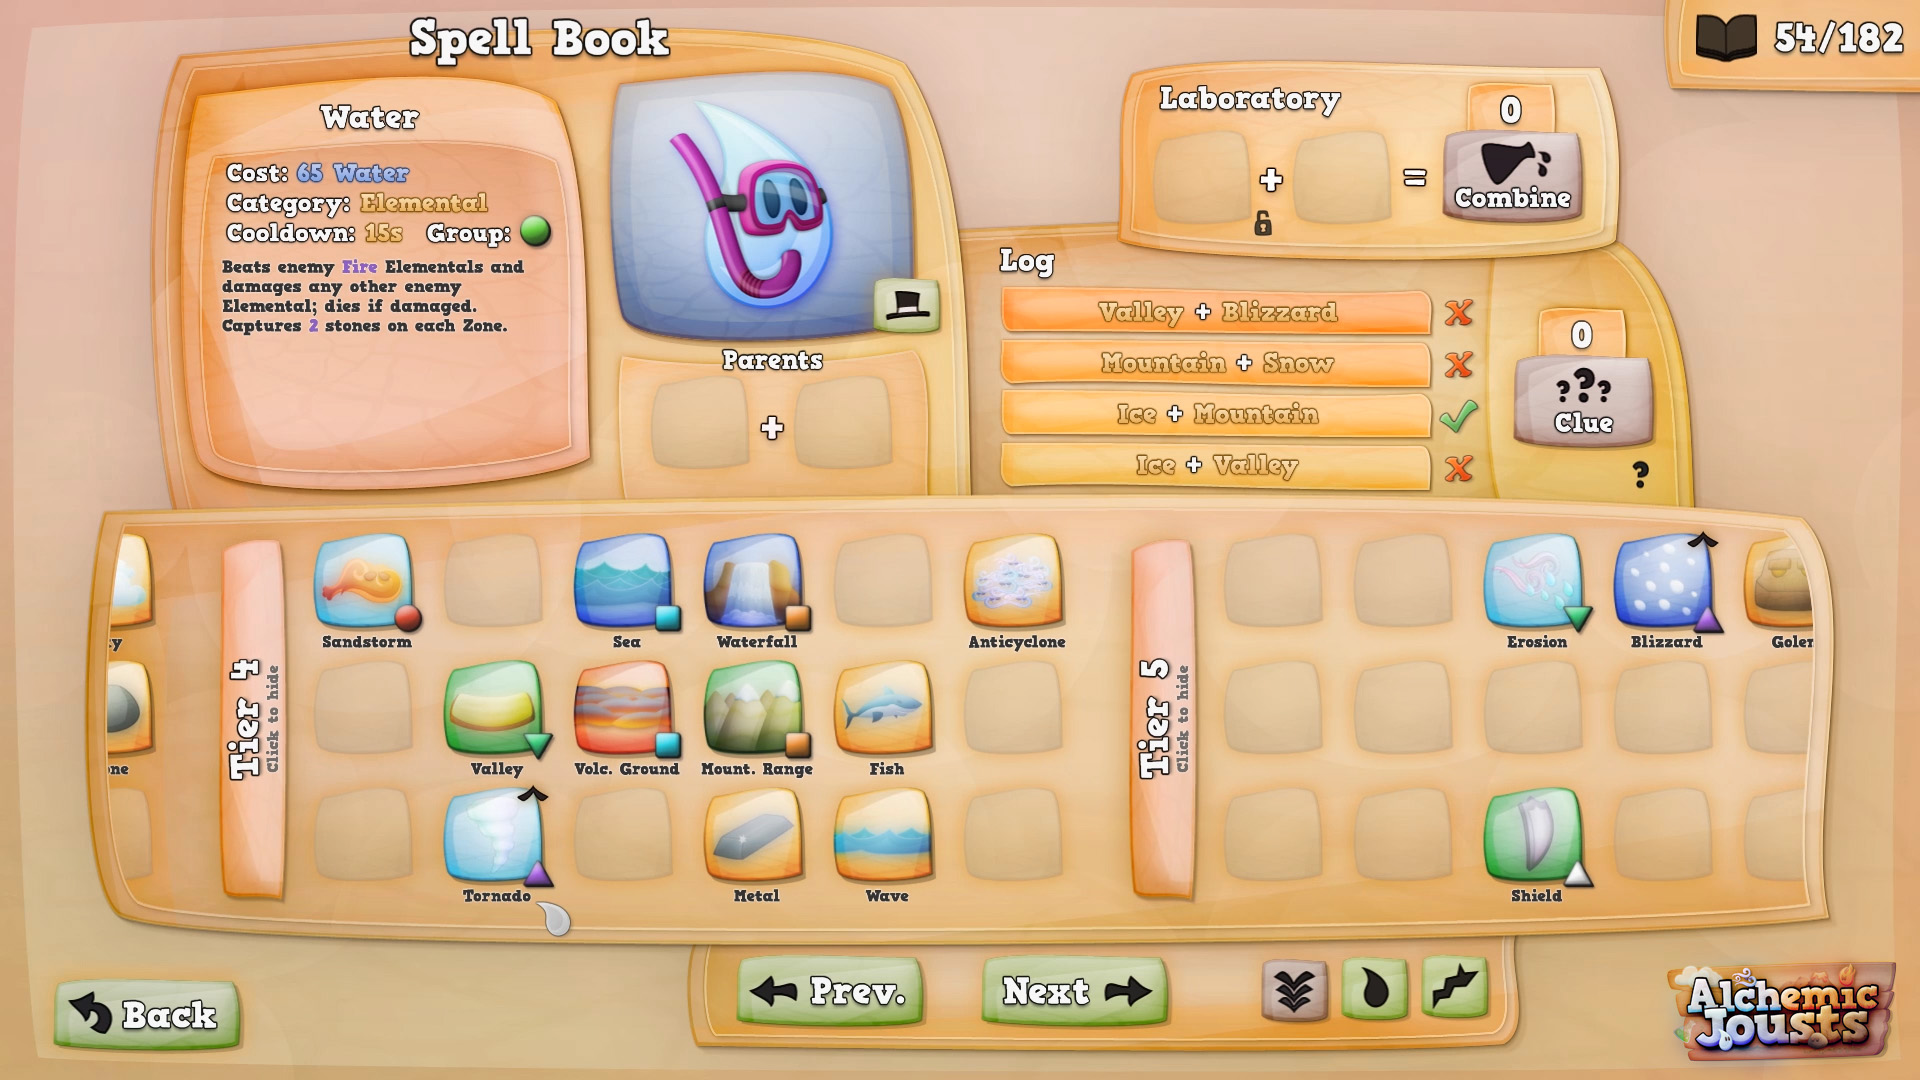 Alchemic Jousts screenshot